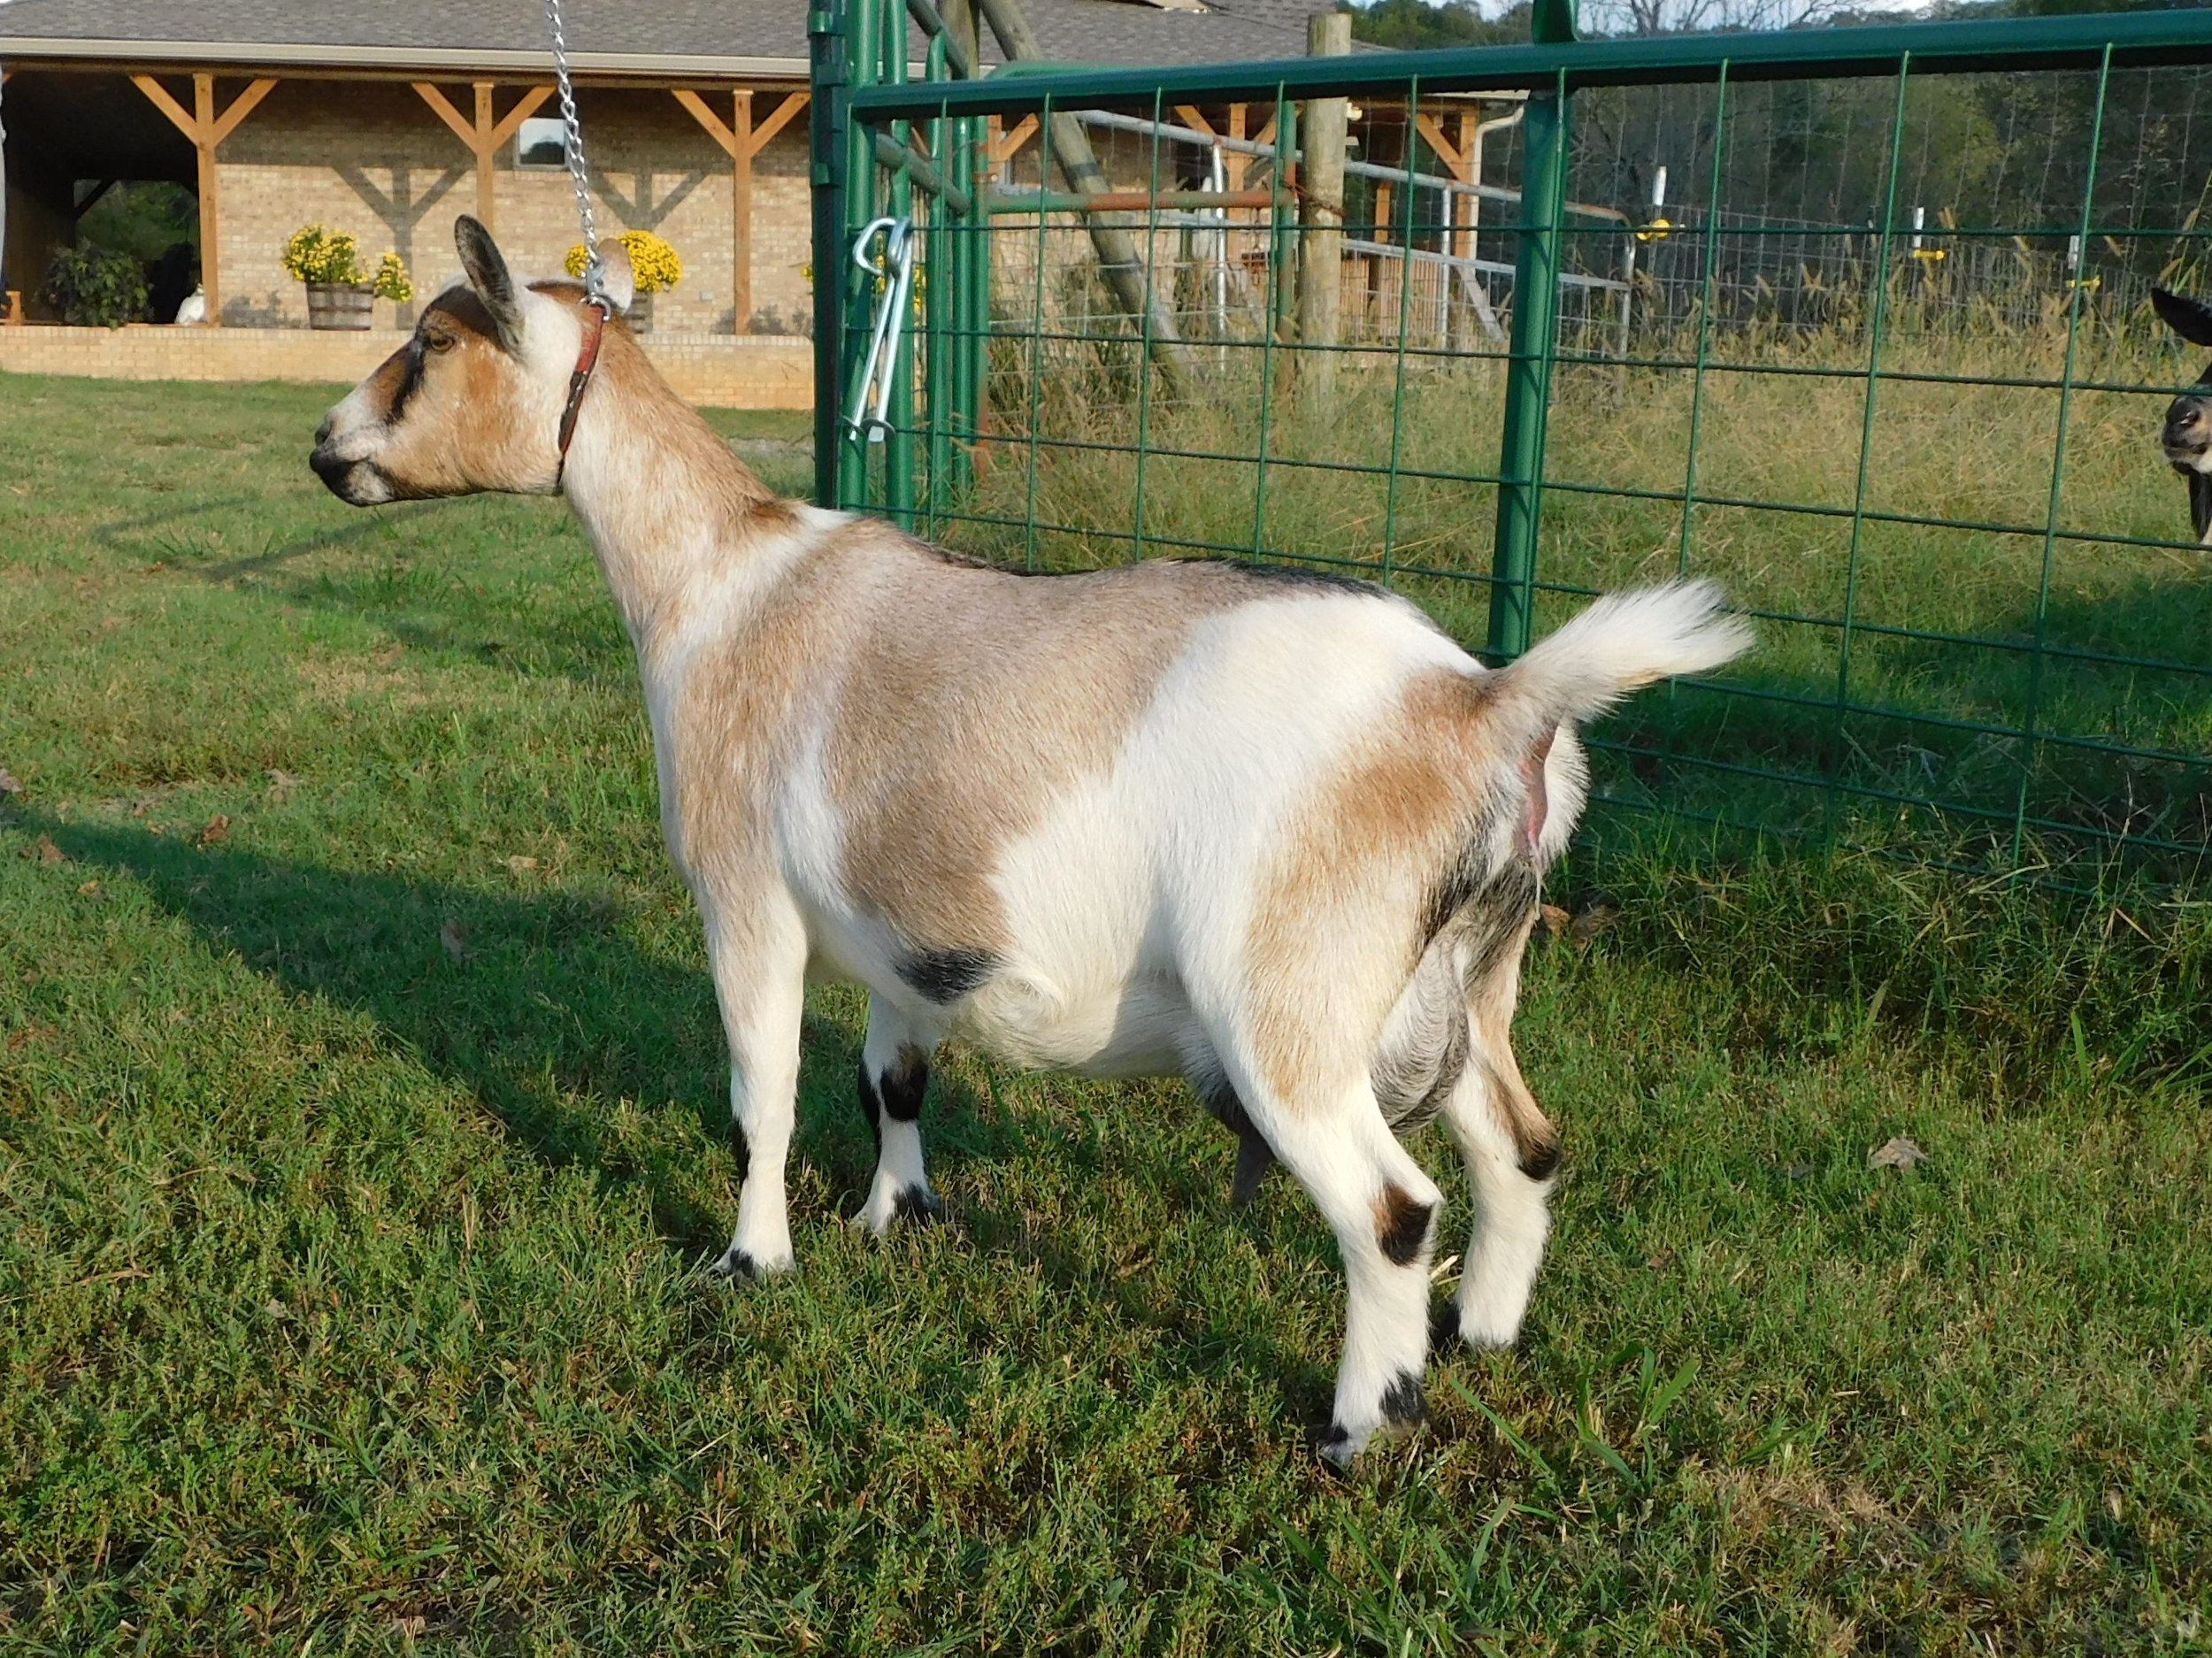 Dalila on 10/04/2018. She has been in milk since Nov. 2017